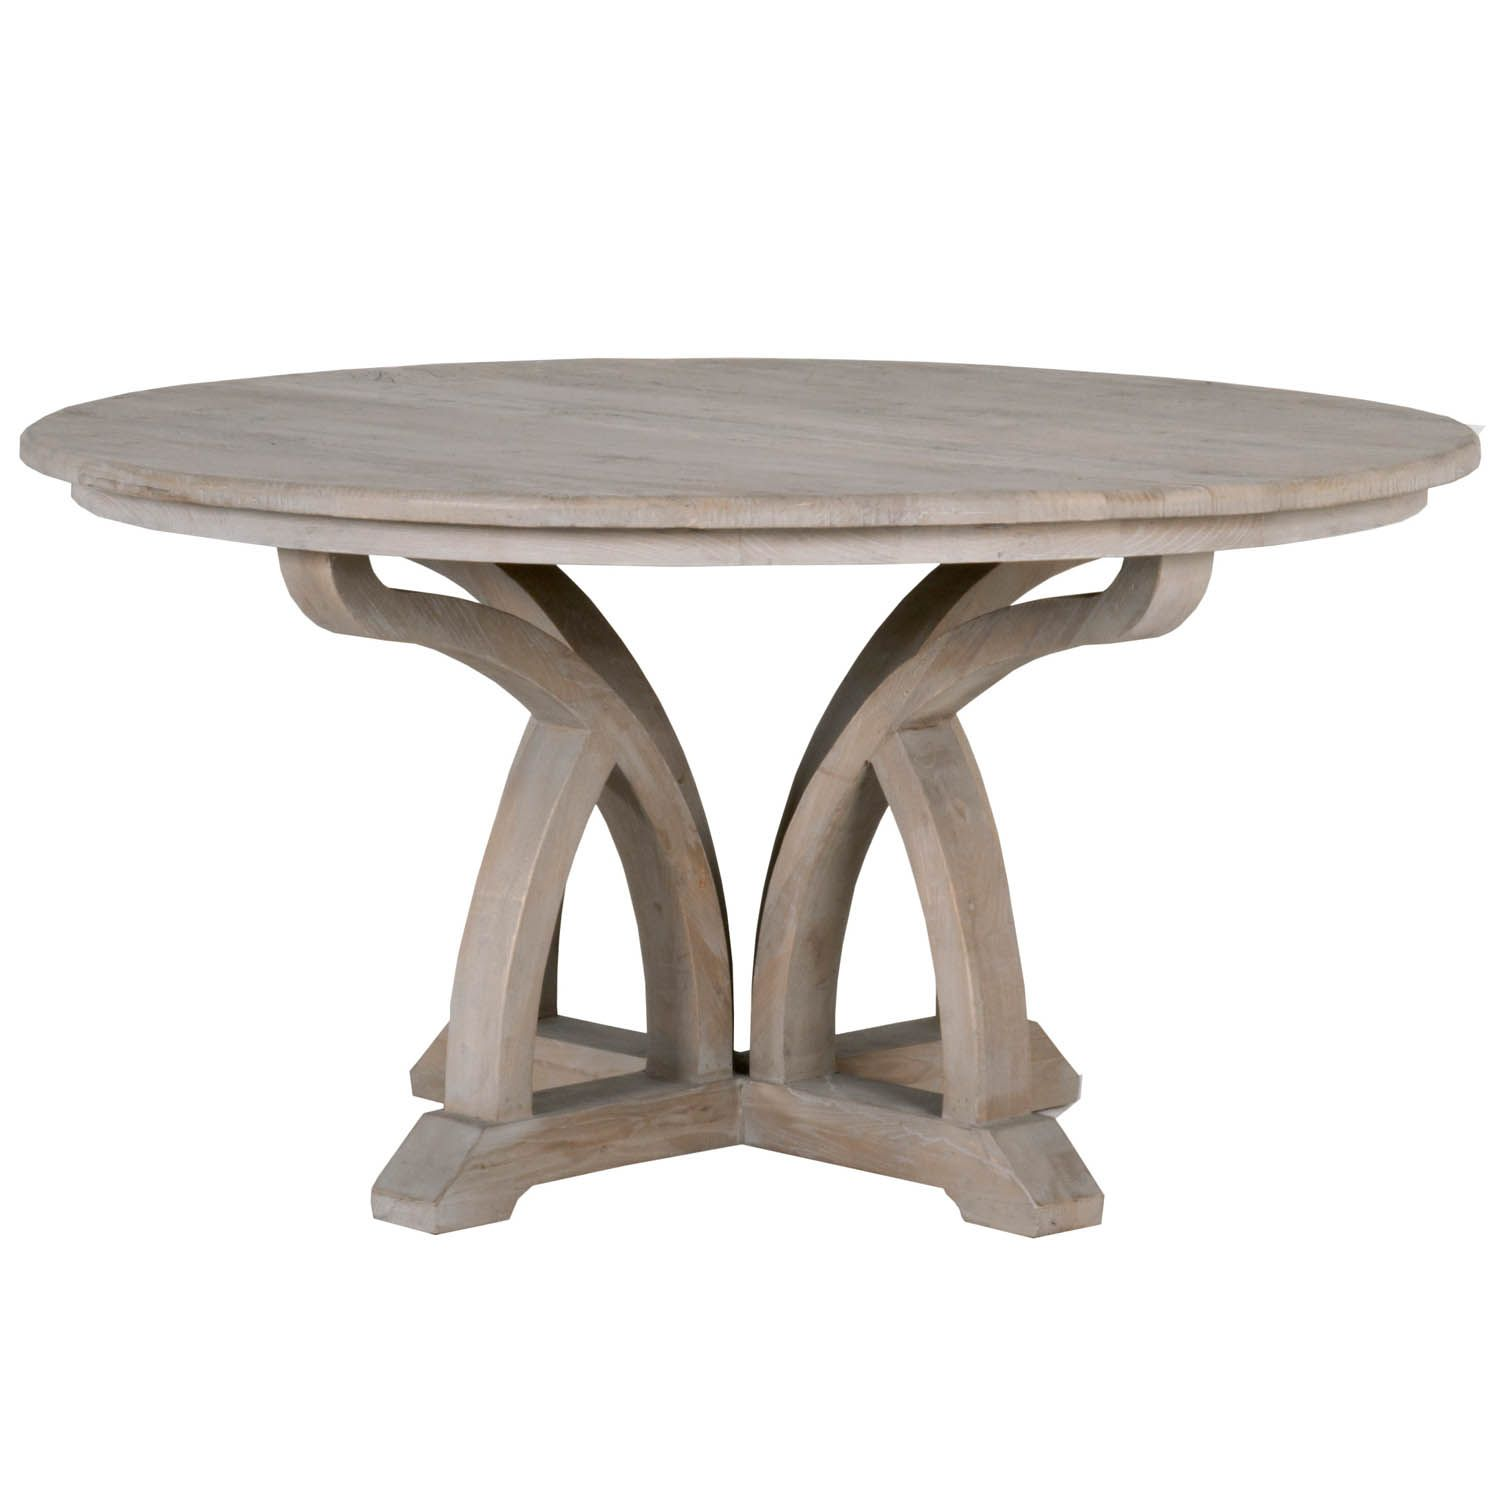 furniture piece products upholstered round dining and pedestal table chair group set by